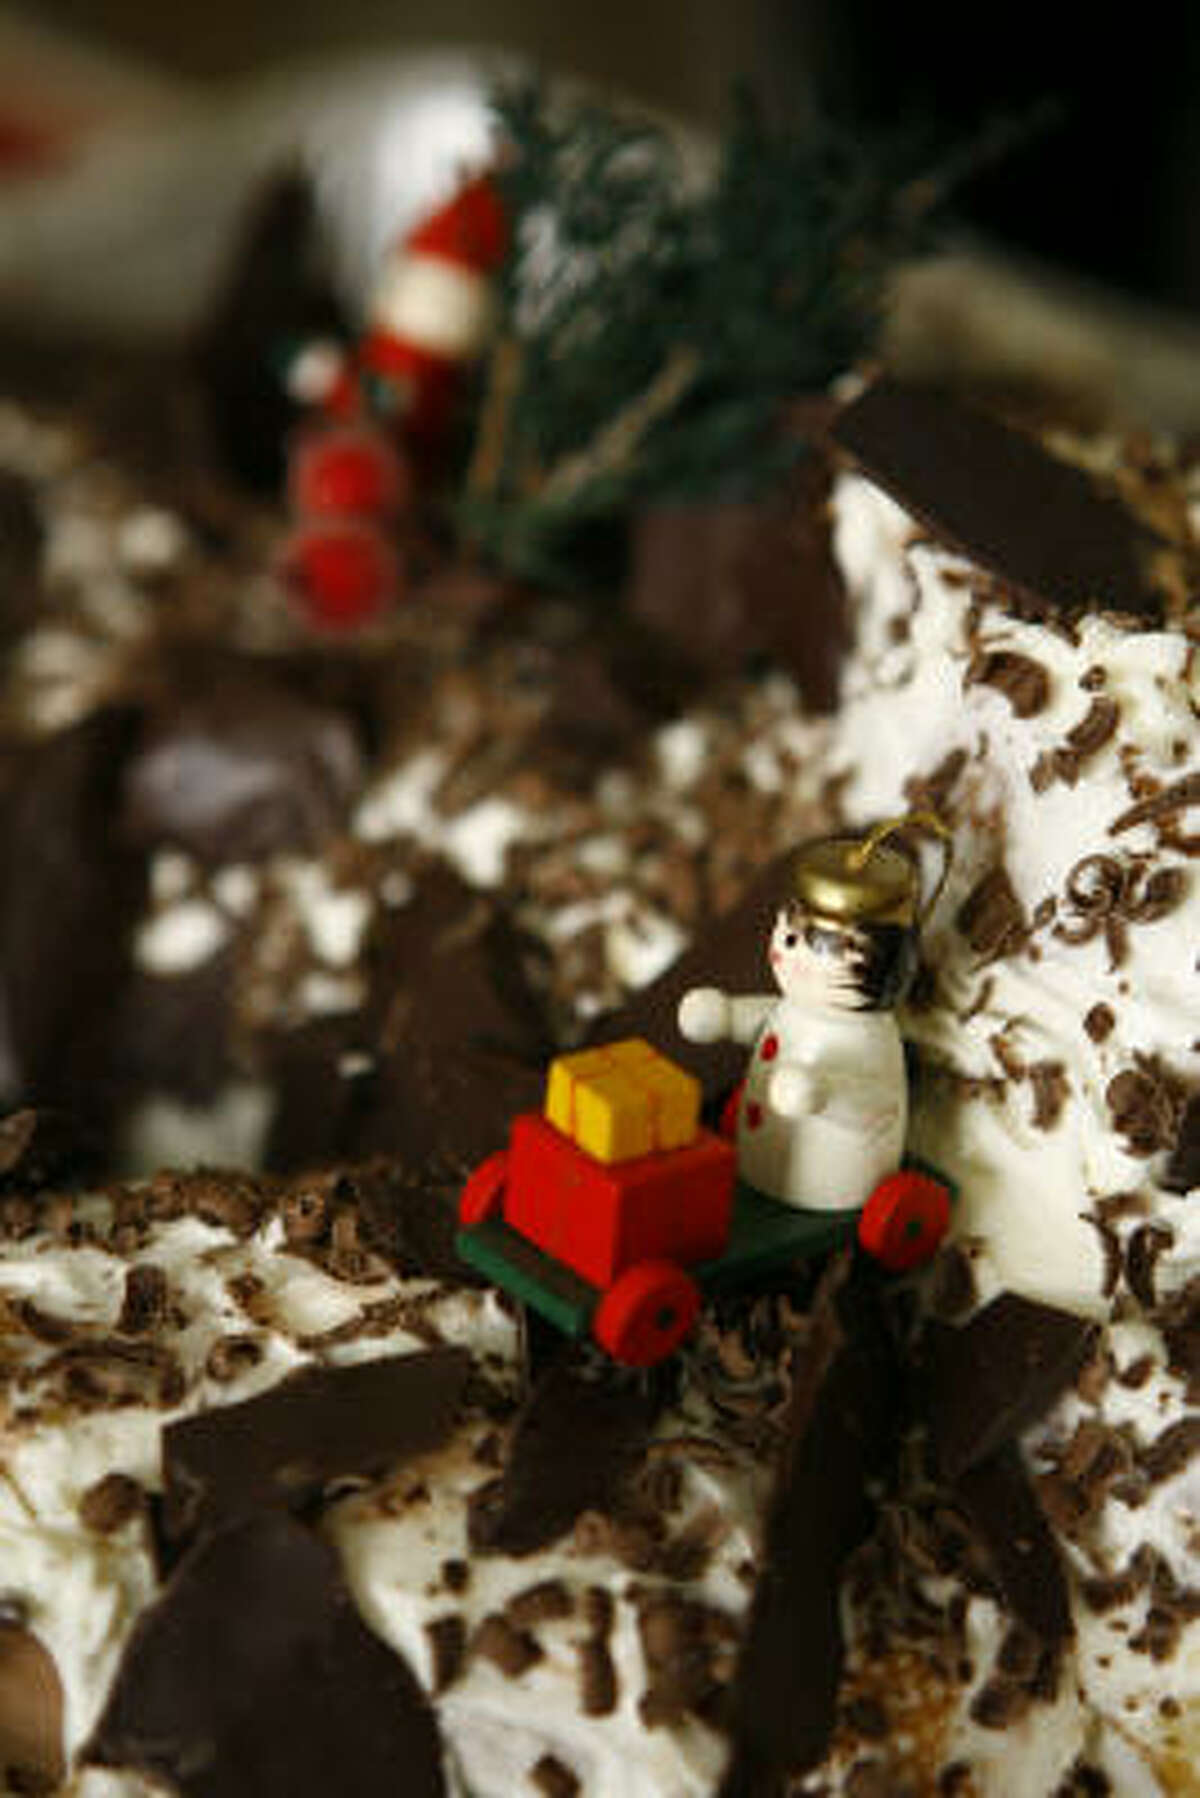 Bûche de Noël is filled with cream and fruit, then topped with chocolate.